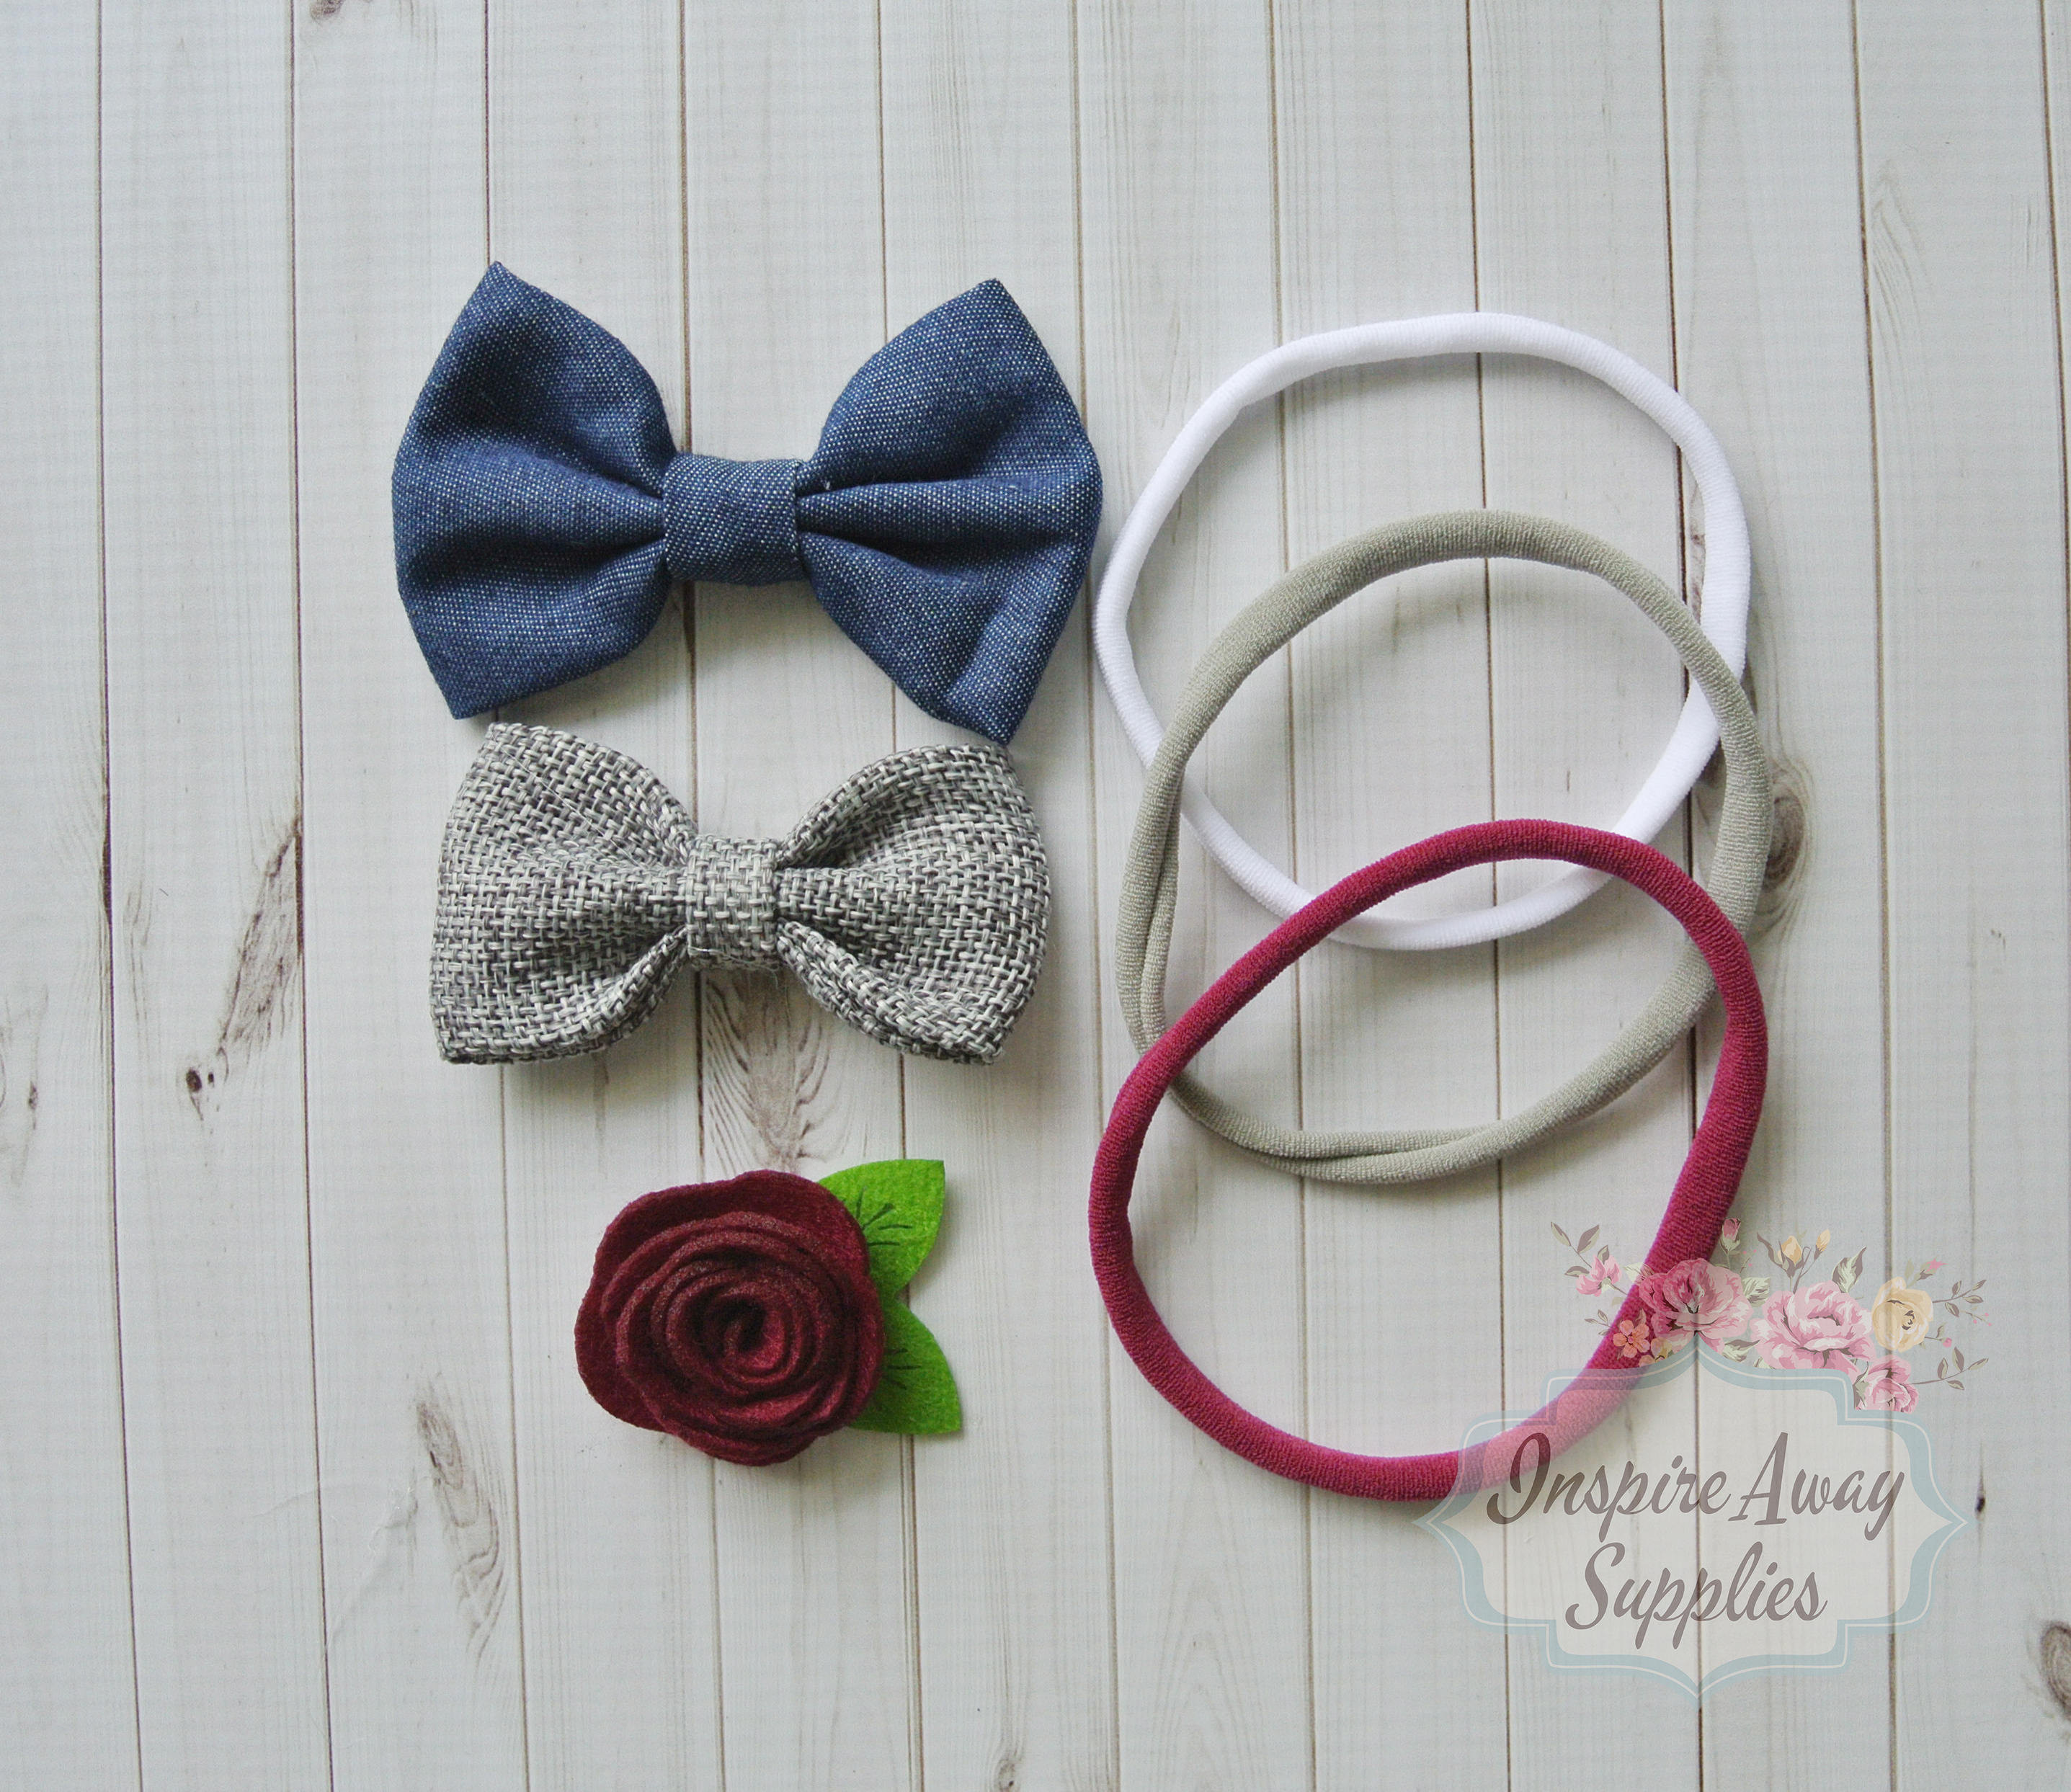 Best ideas about DIY Baby Bow Headband . Save or Pin DIY Kit Nylon Headbands Kit Bow headbands baby shower Now.